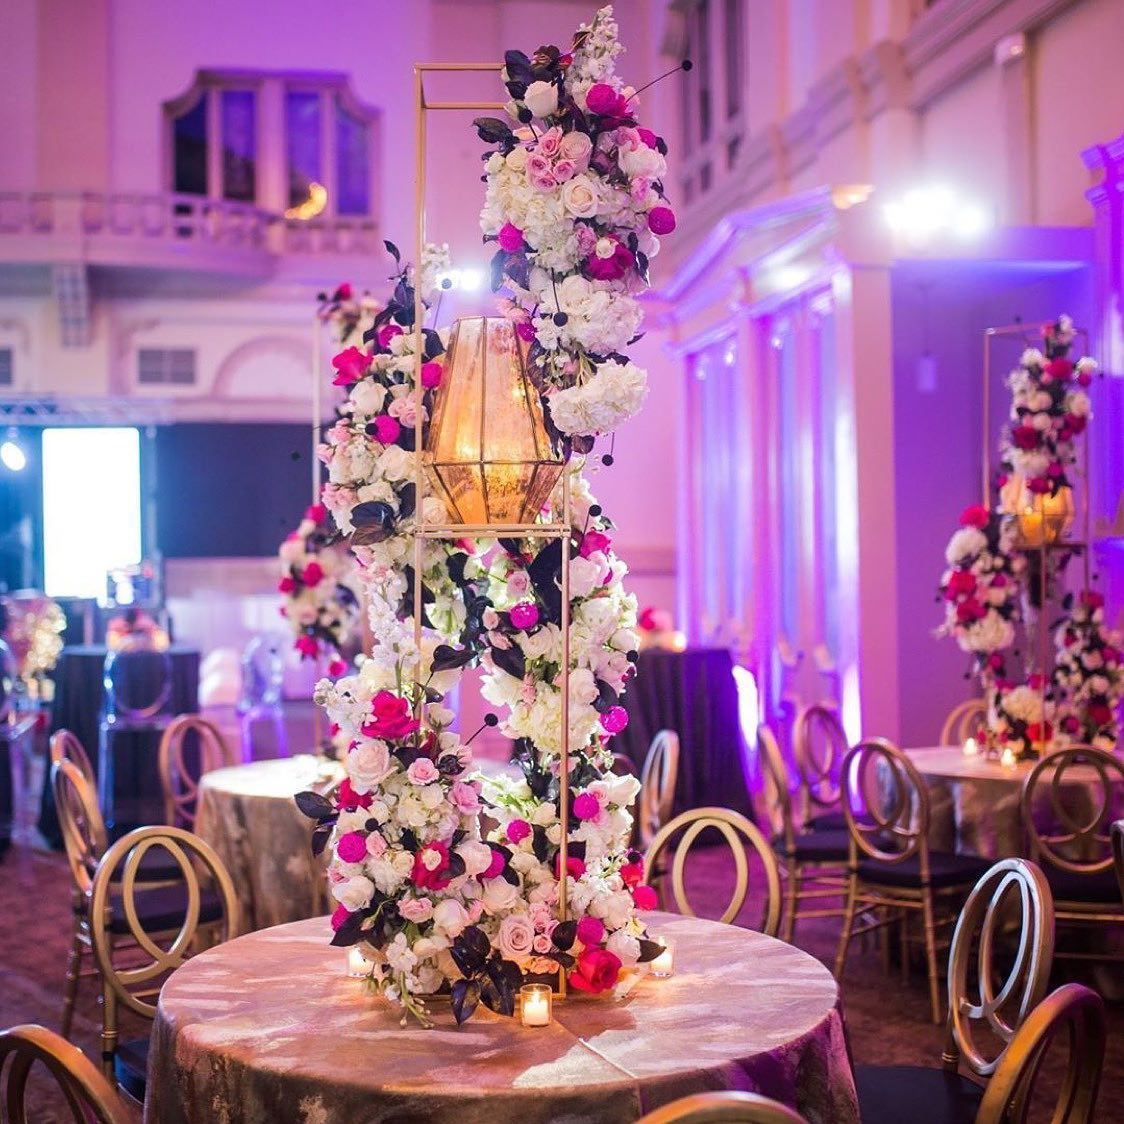 Pink and gold party decor. Photo: Mateo + Co.